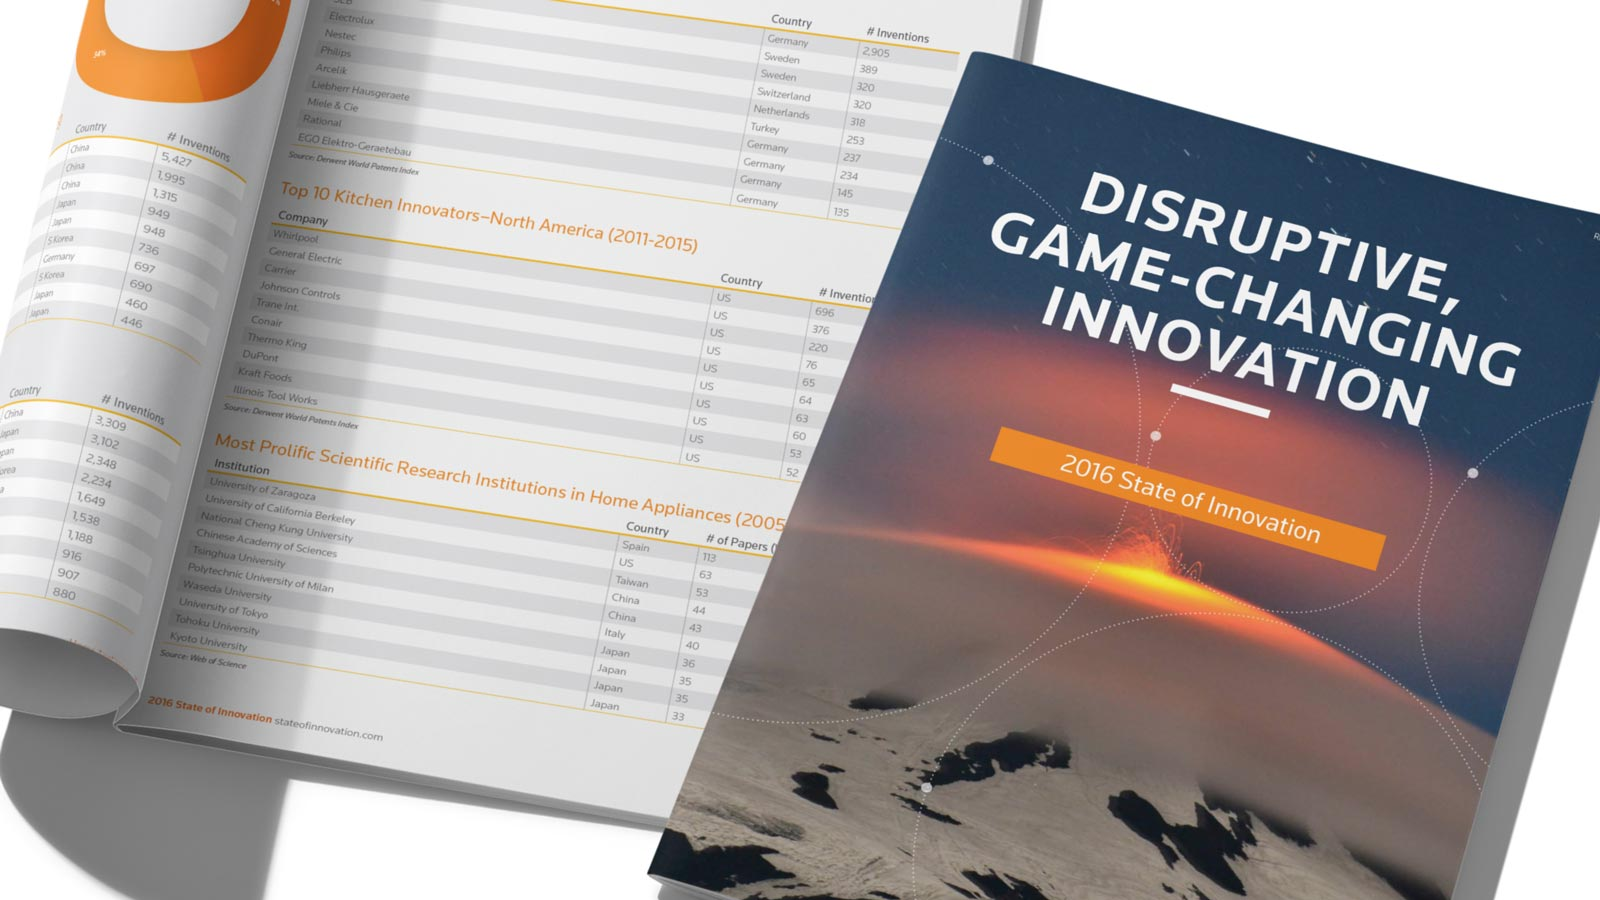 State of Innovation Report